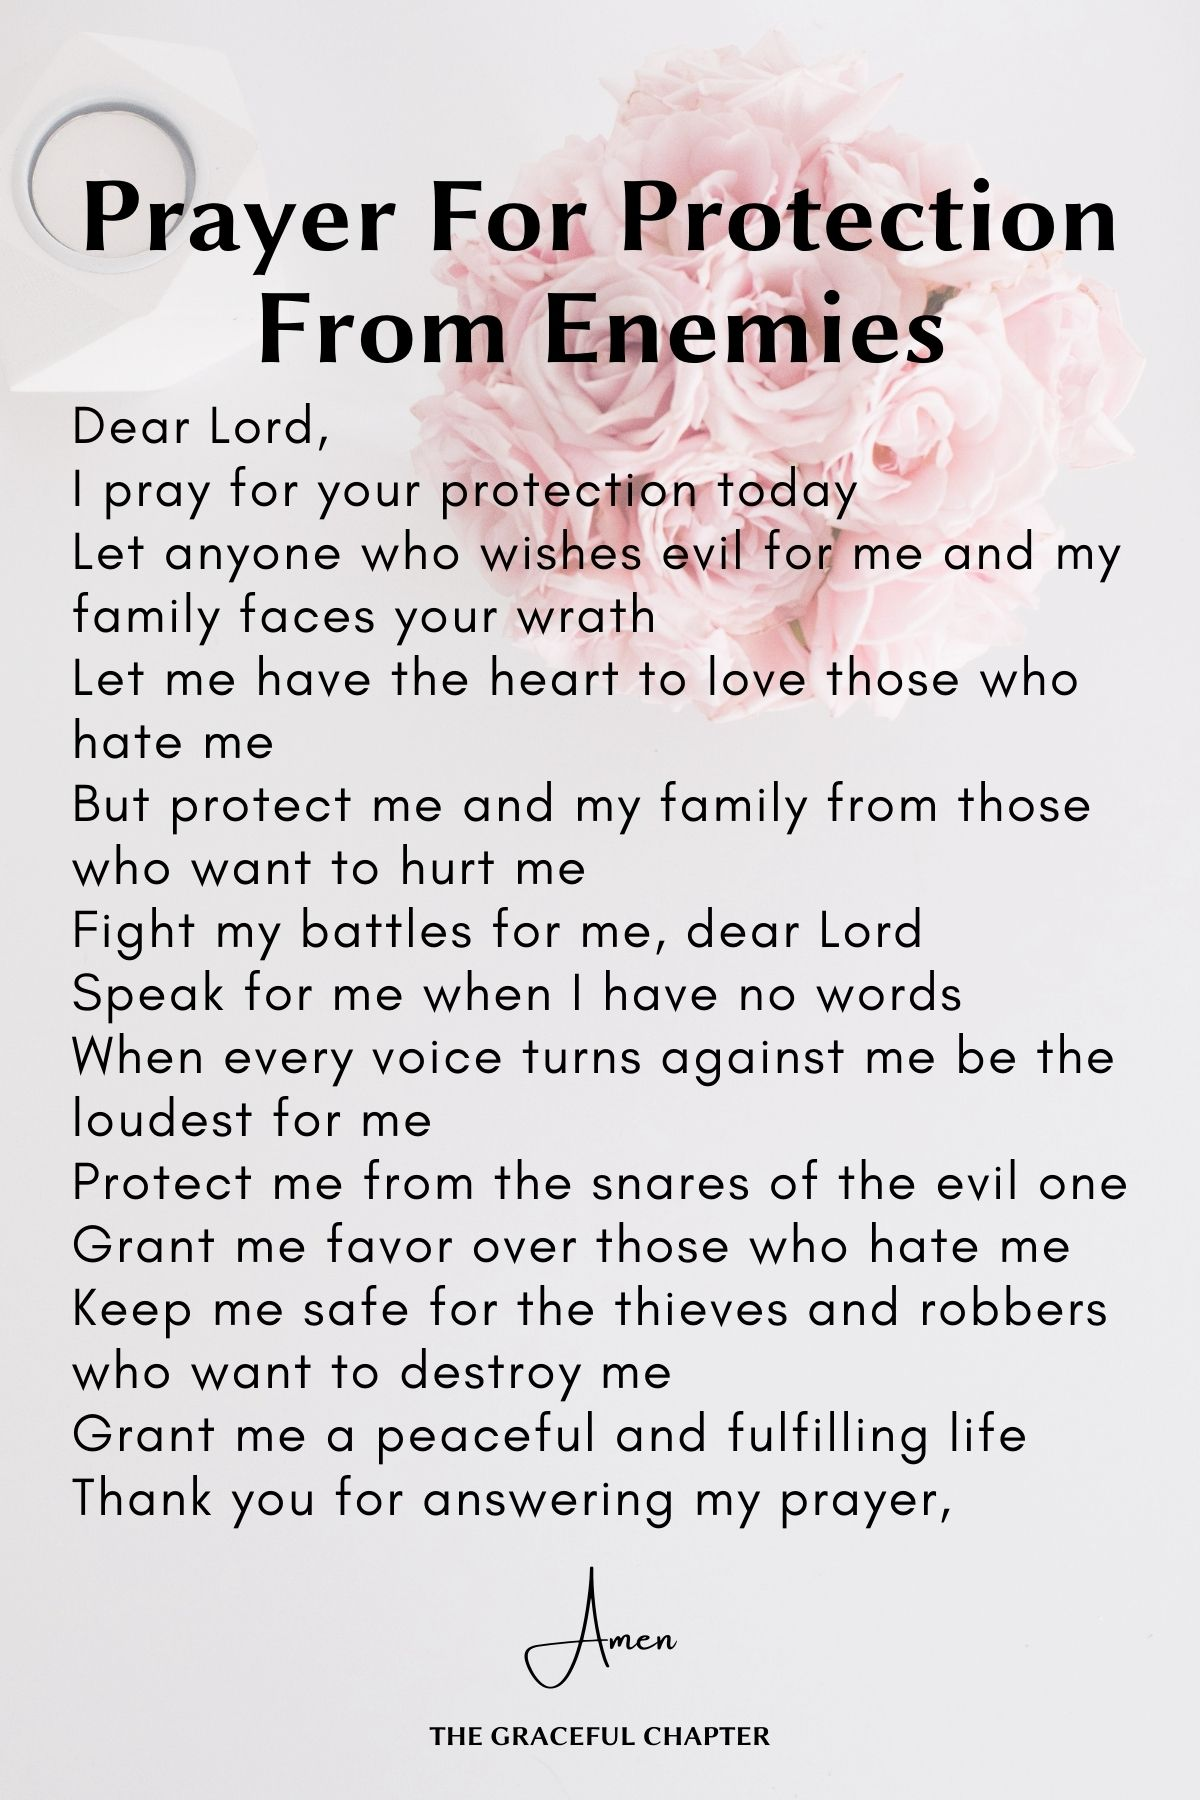 Prayers for Protection from enemies